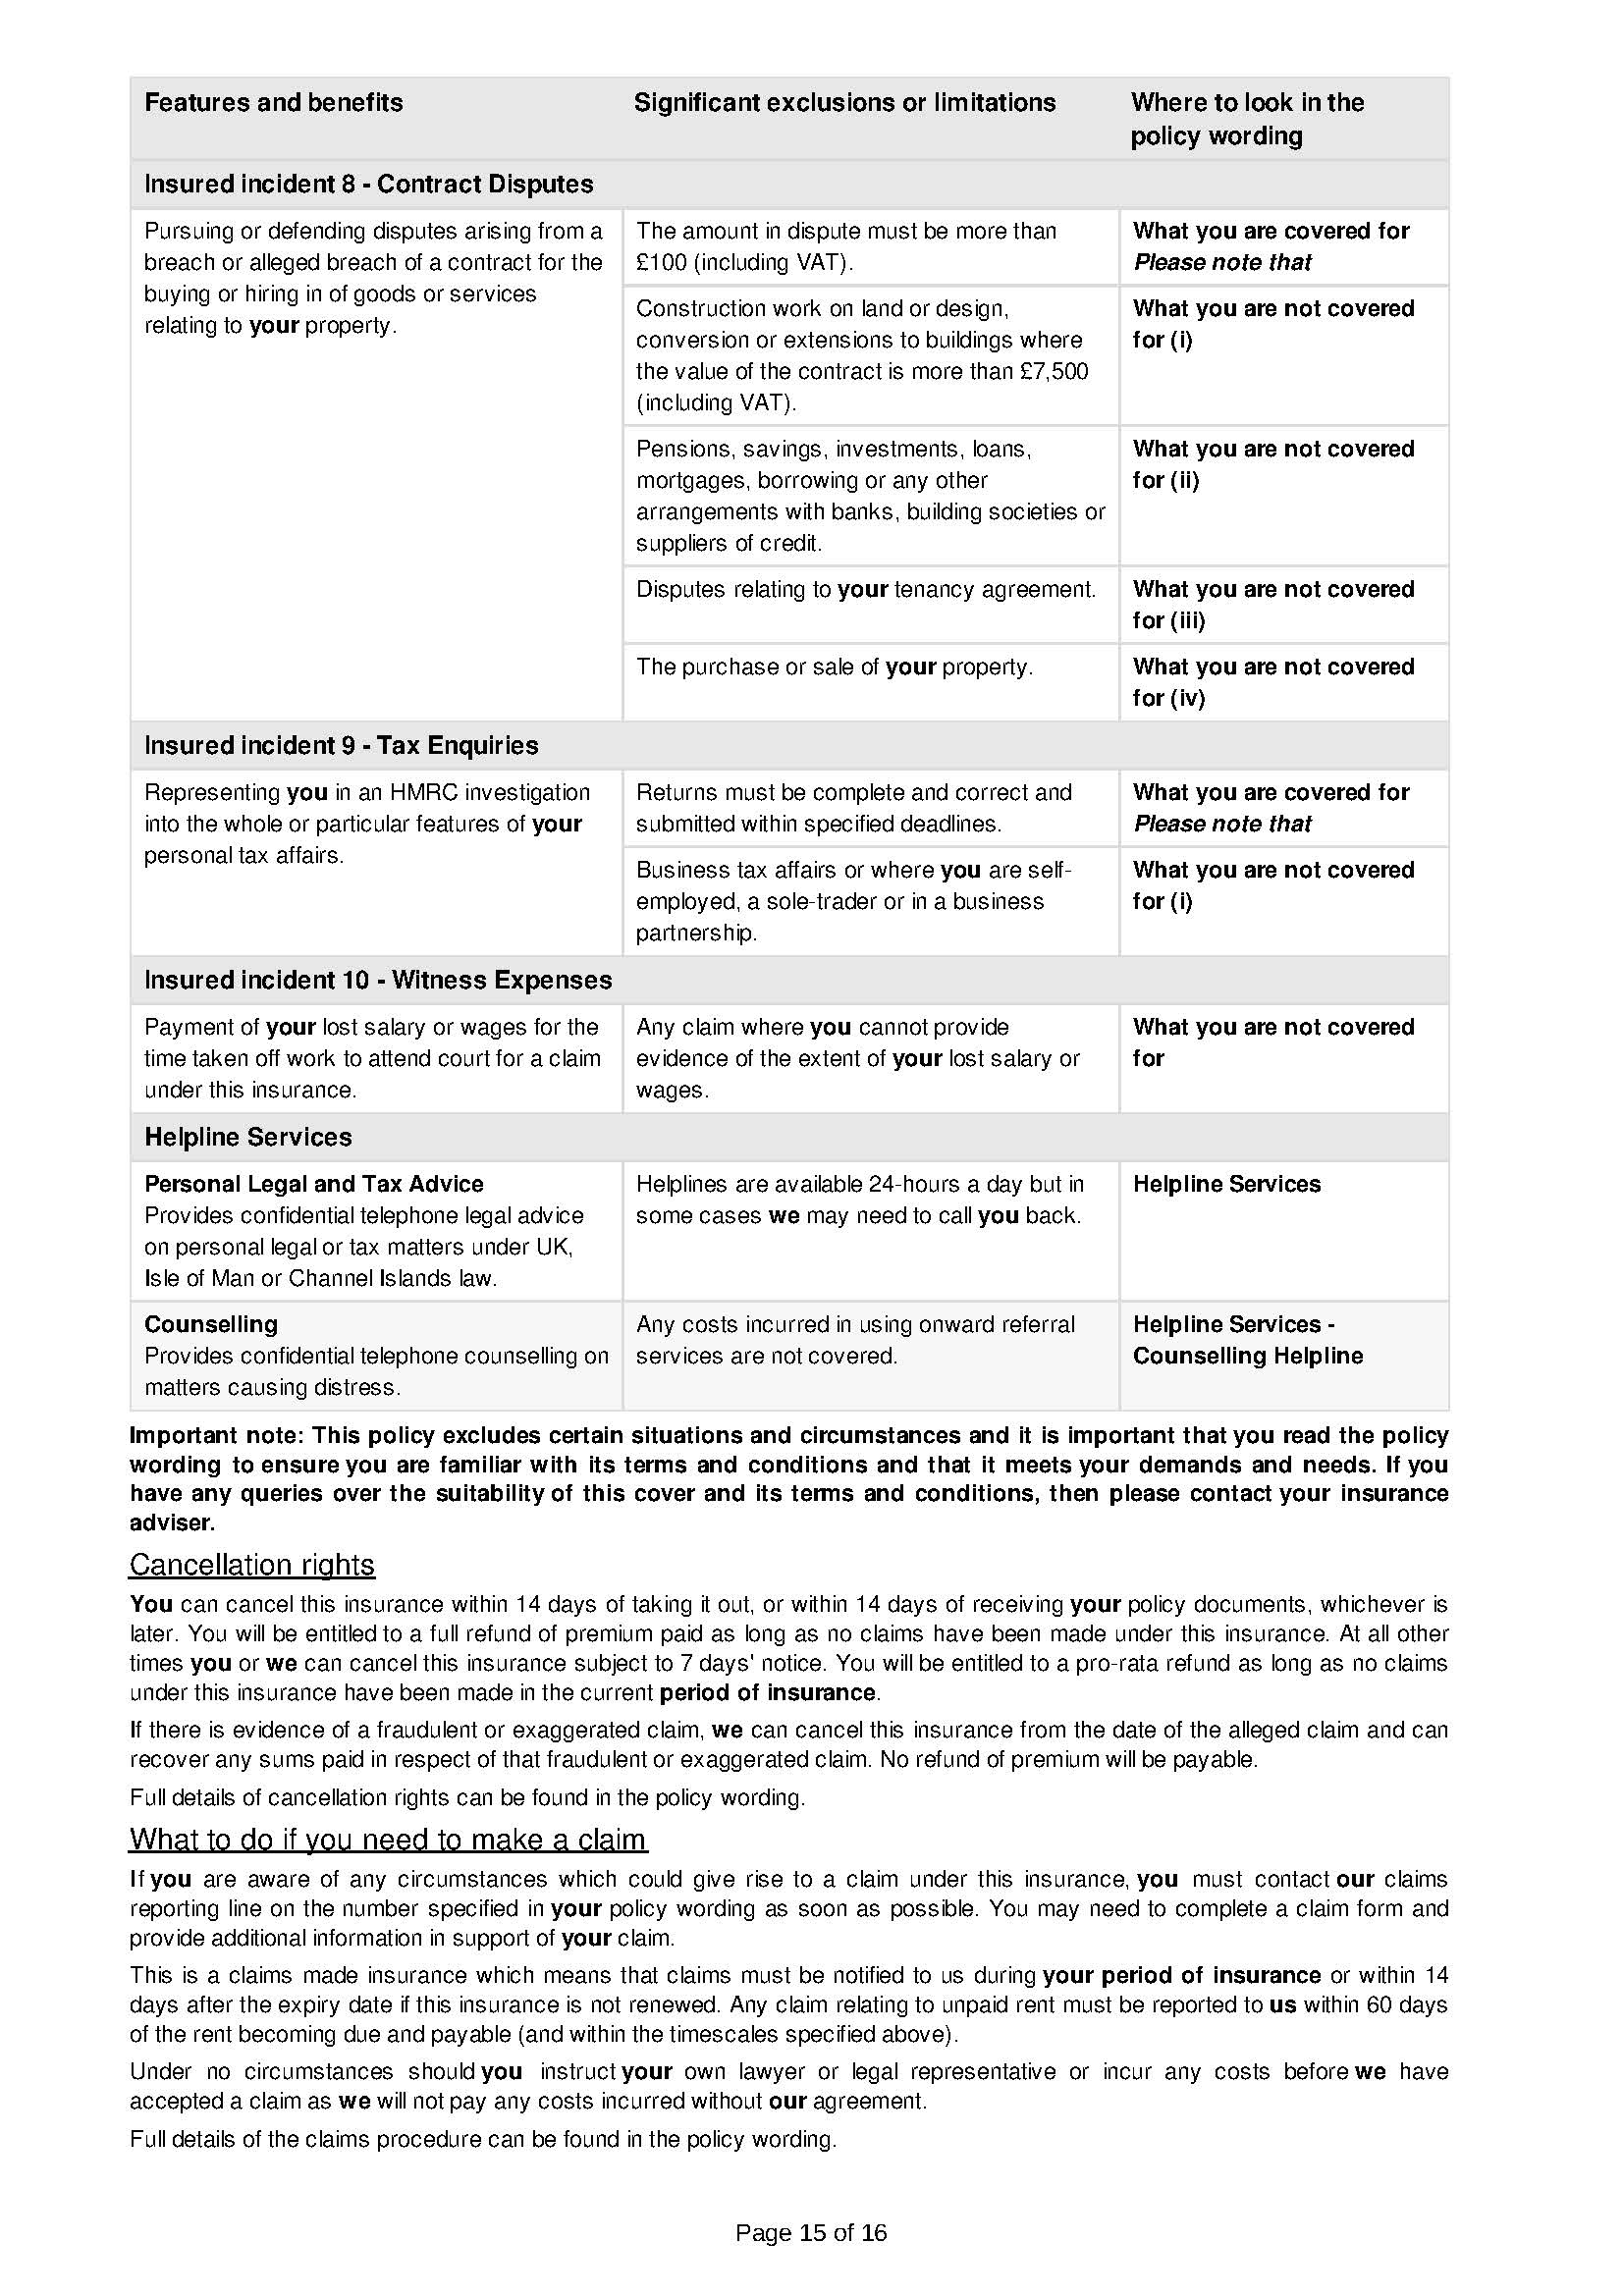 insurance_policy_02_page_15